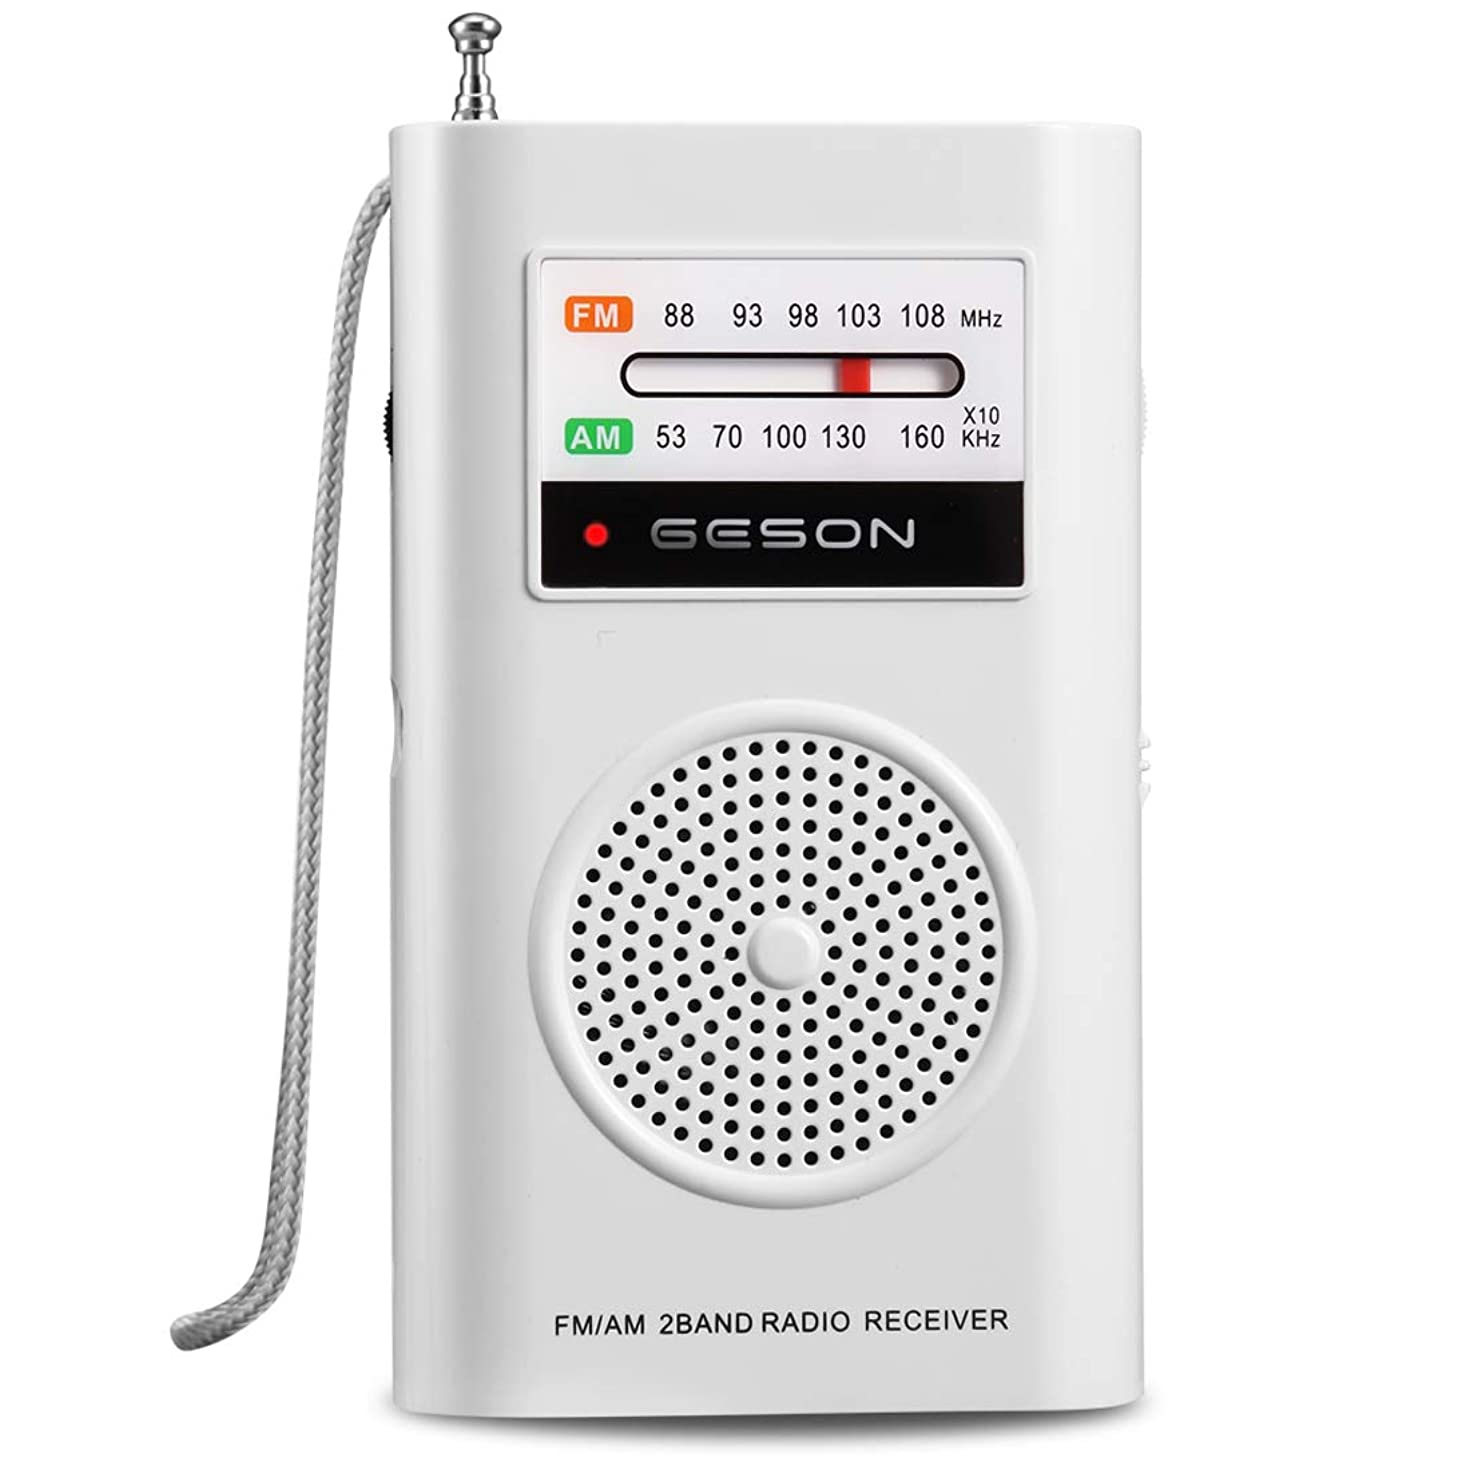 Portable Pocket Radio AM/FM,Best Reception,Transistor Radios Player Operated by 2 AA Battery,Built-in Speaker and 3.5mm Headphone Jack(White)